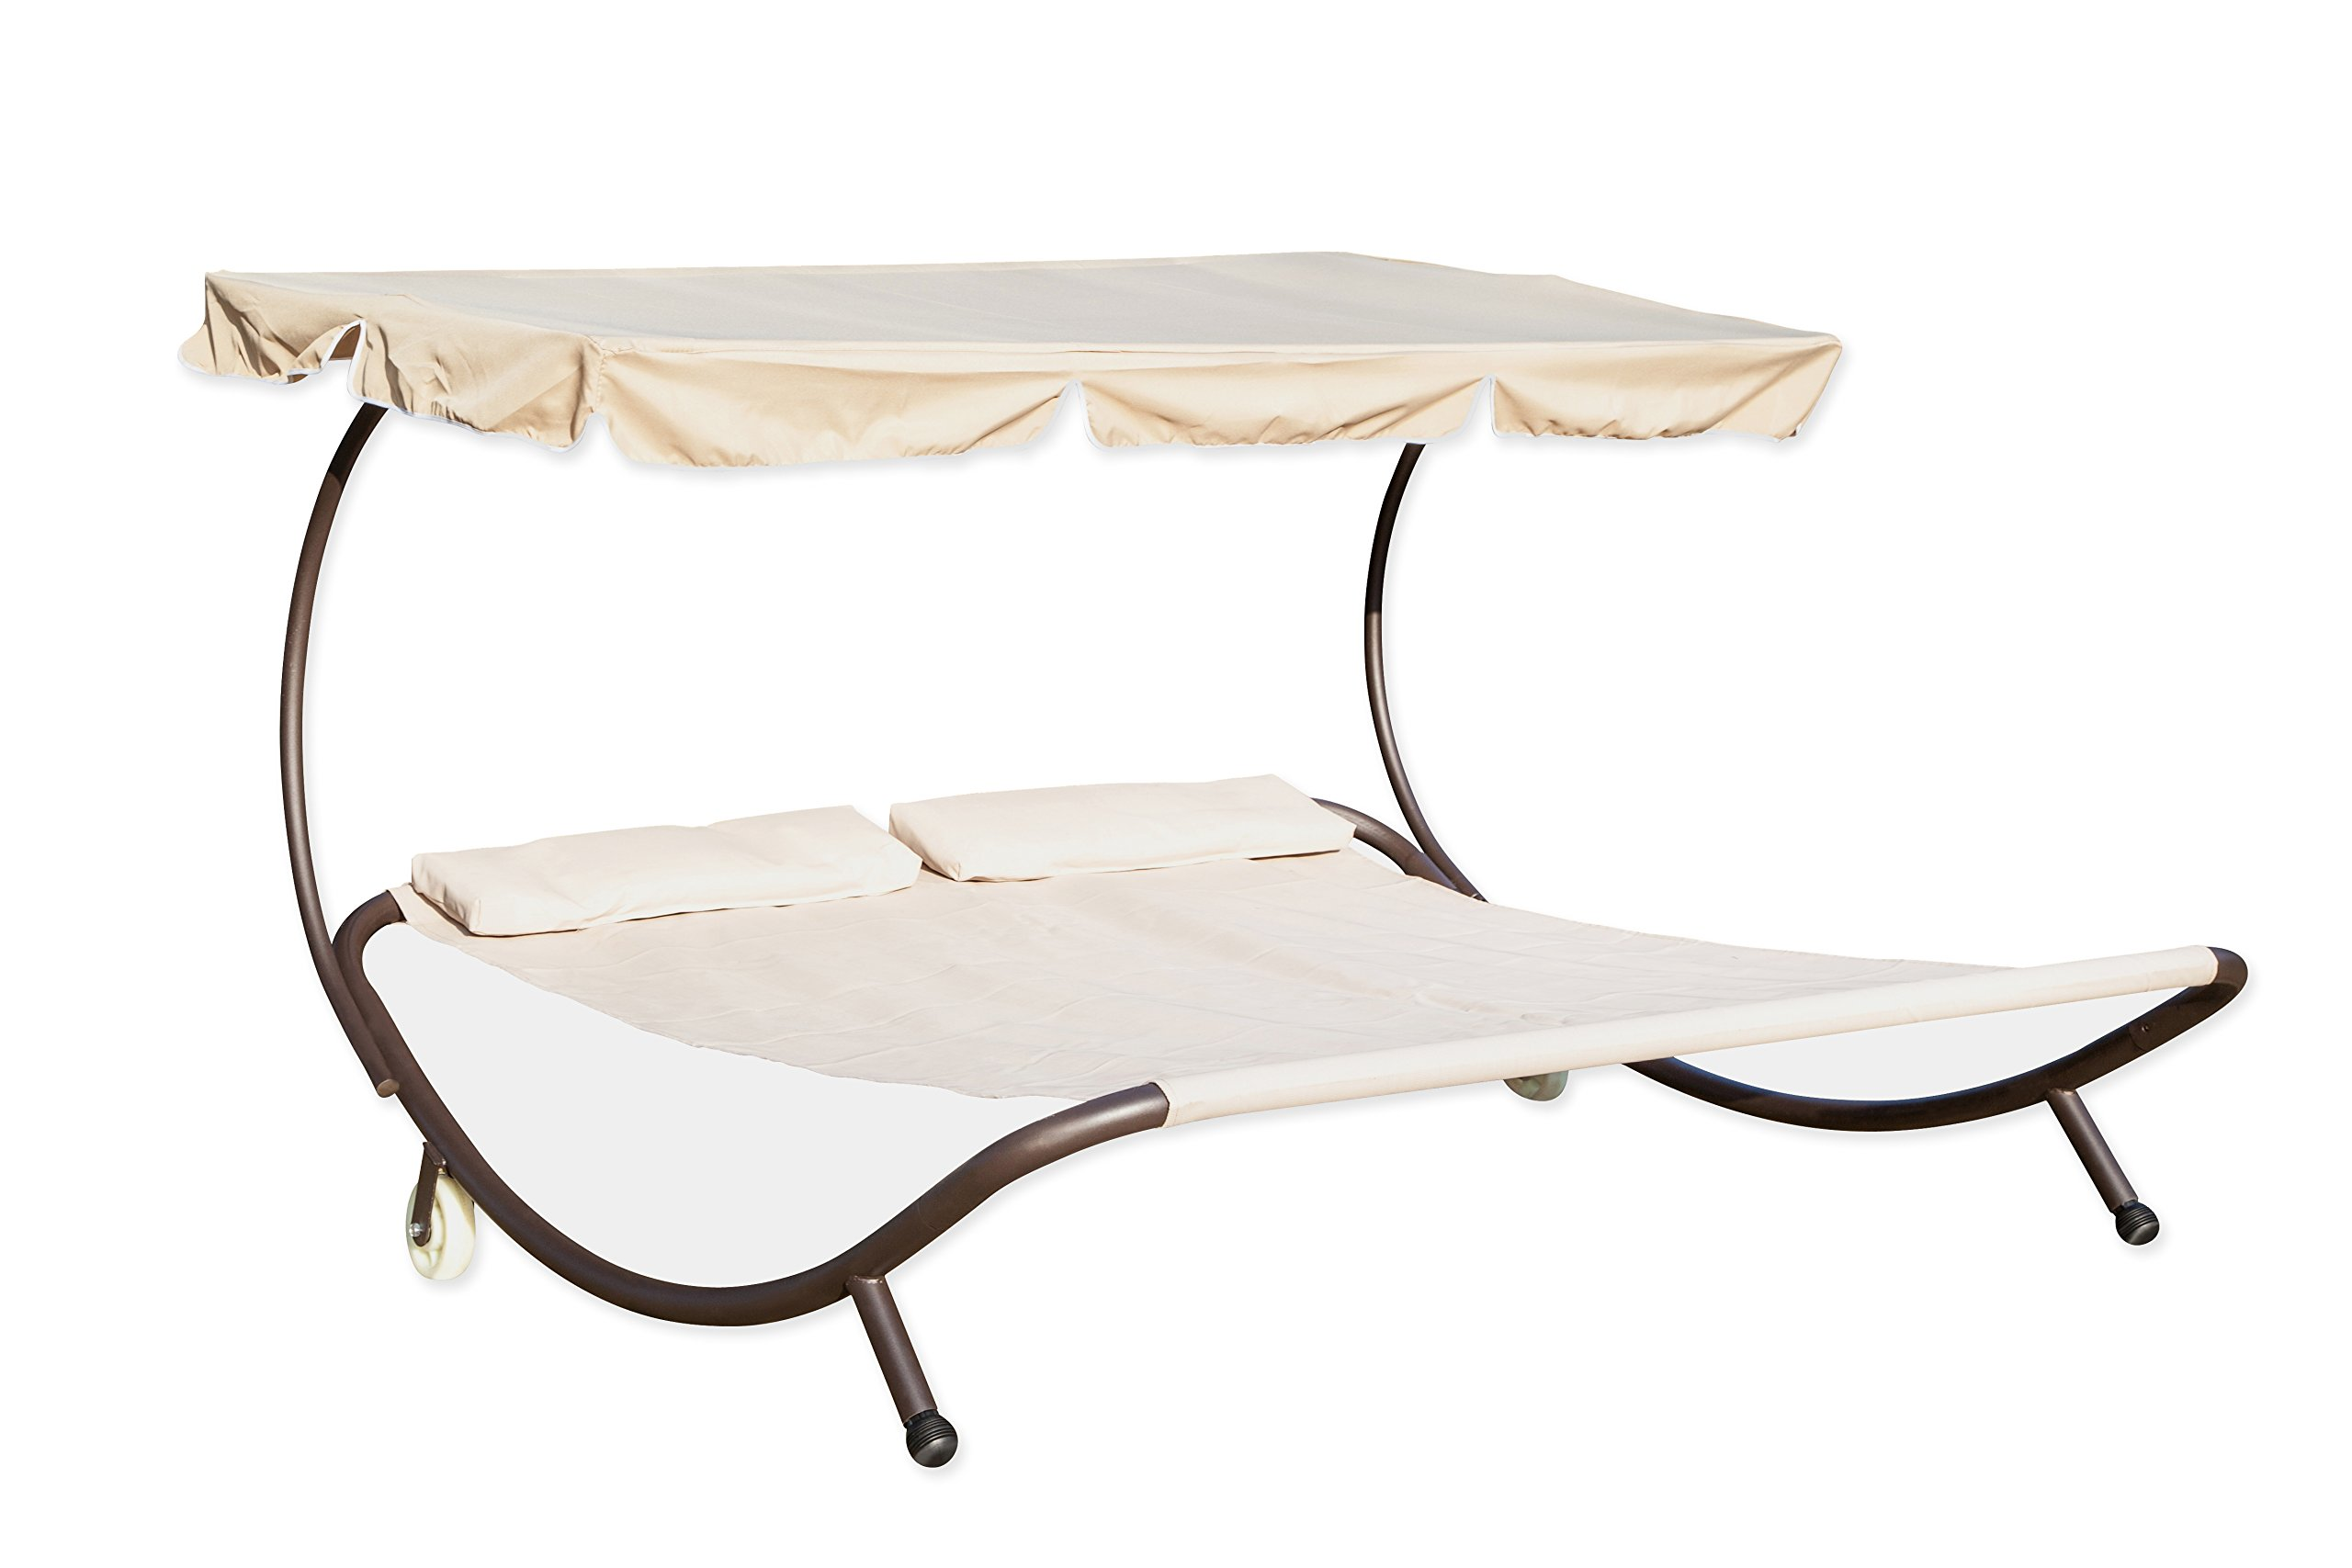 Double Hammock Bed Sunbed with Canopy by Trademark Innovations by Trademark Innovations (Image #1)